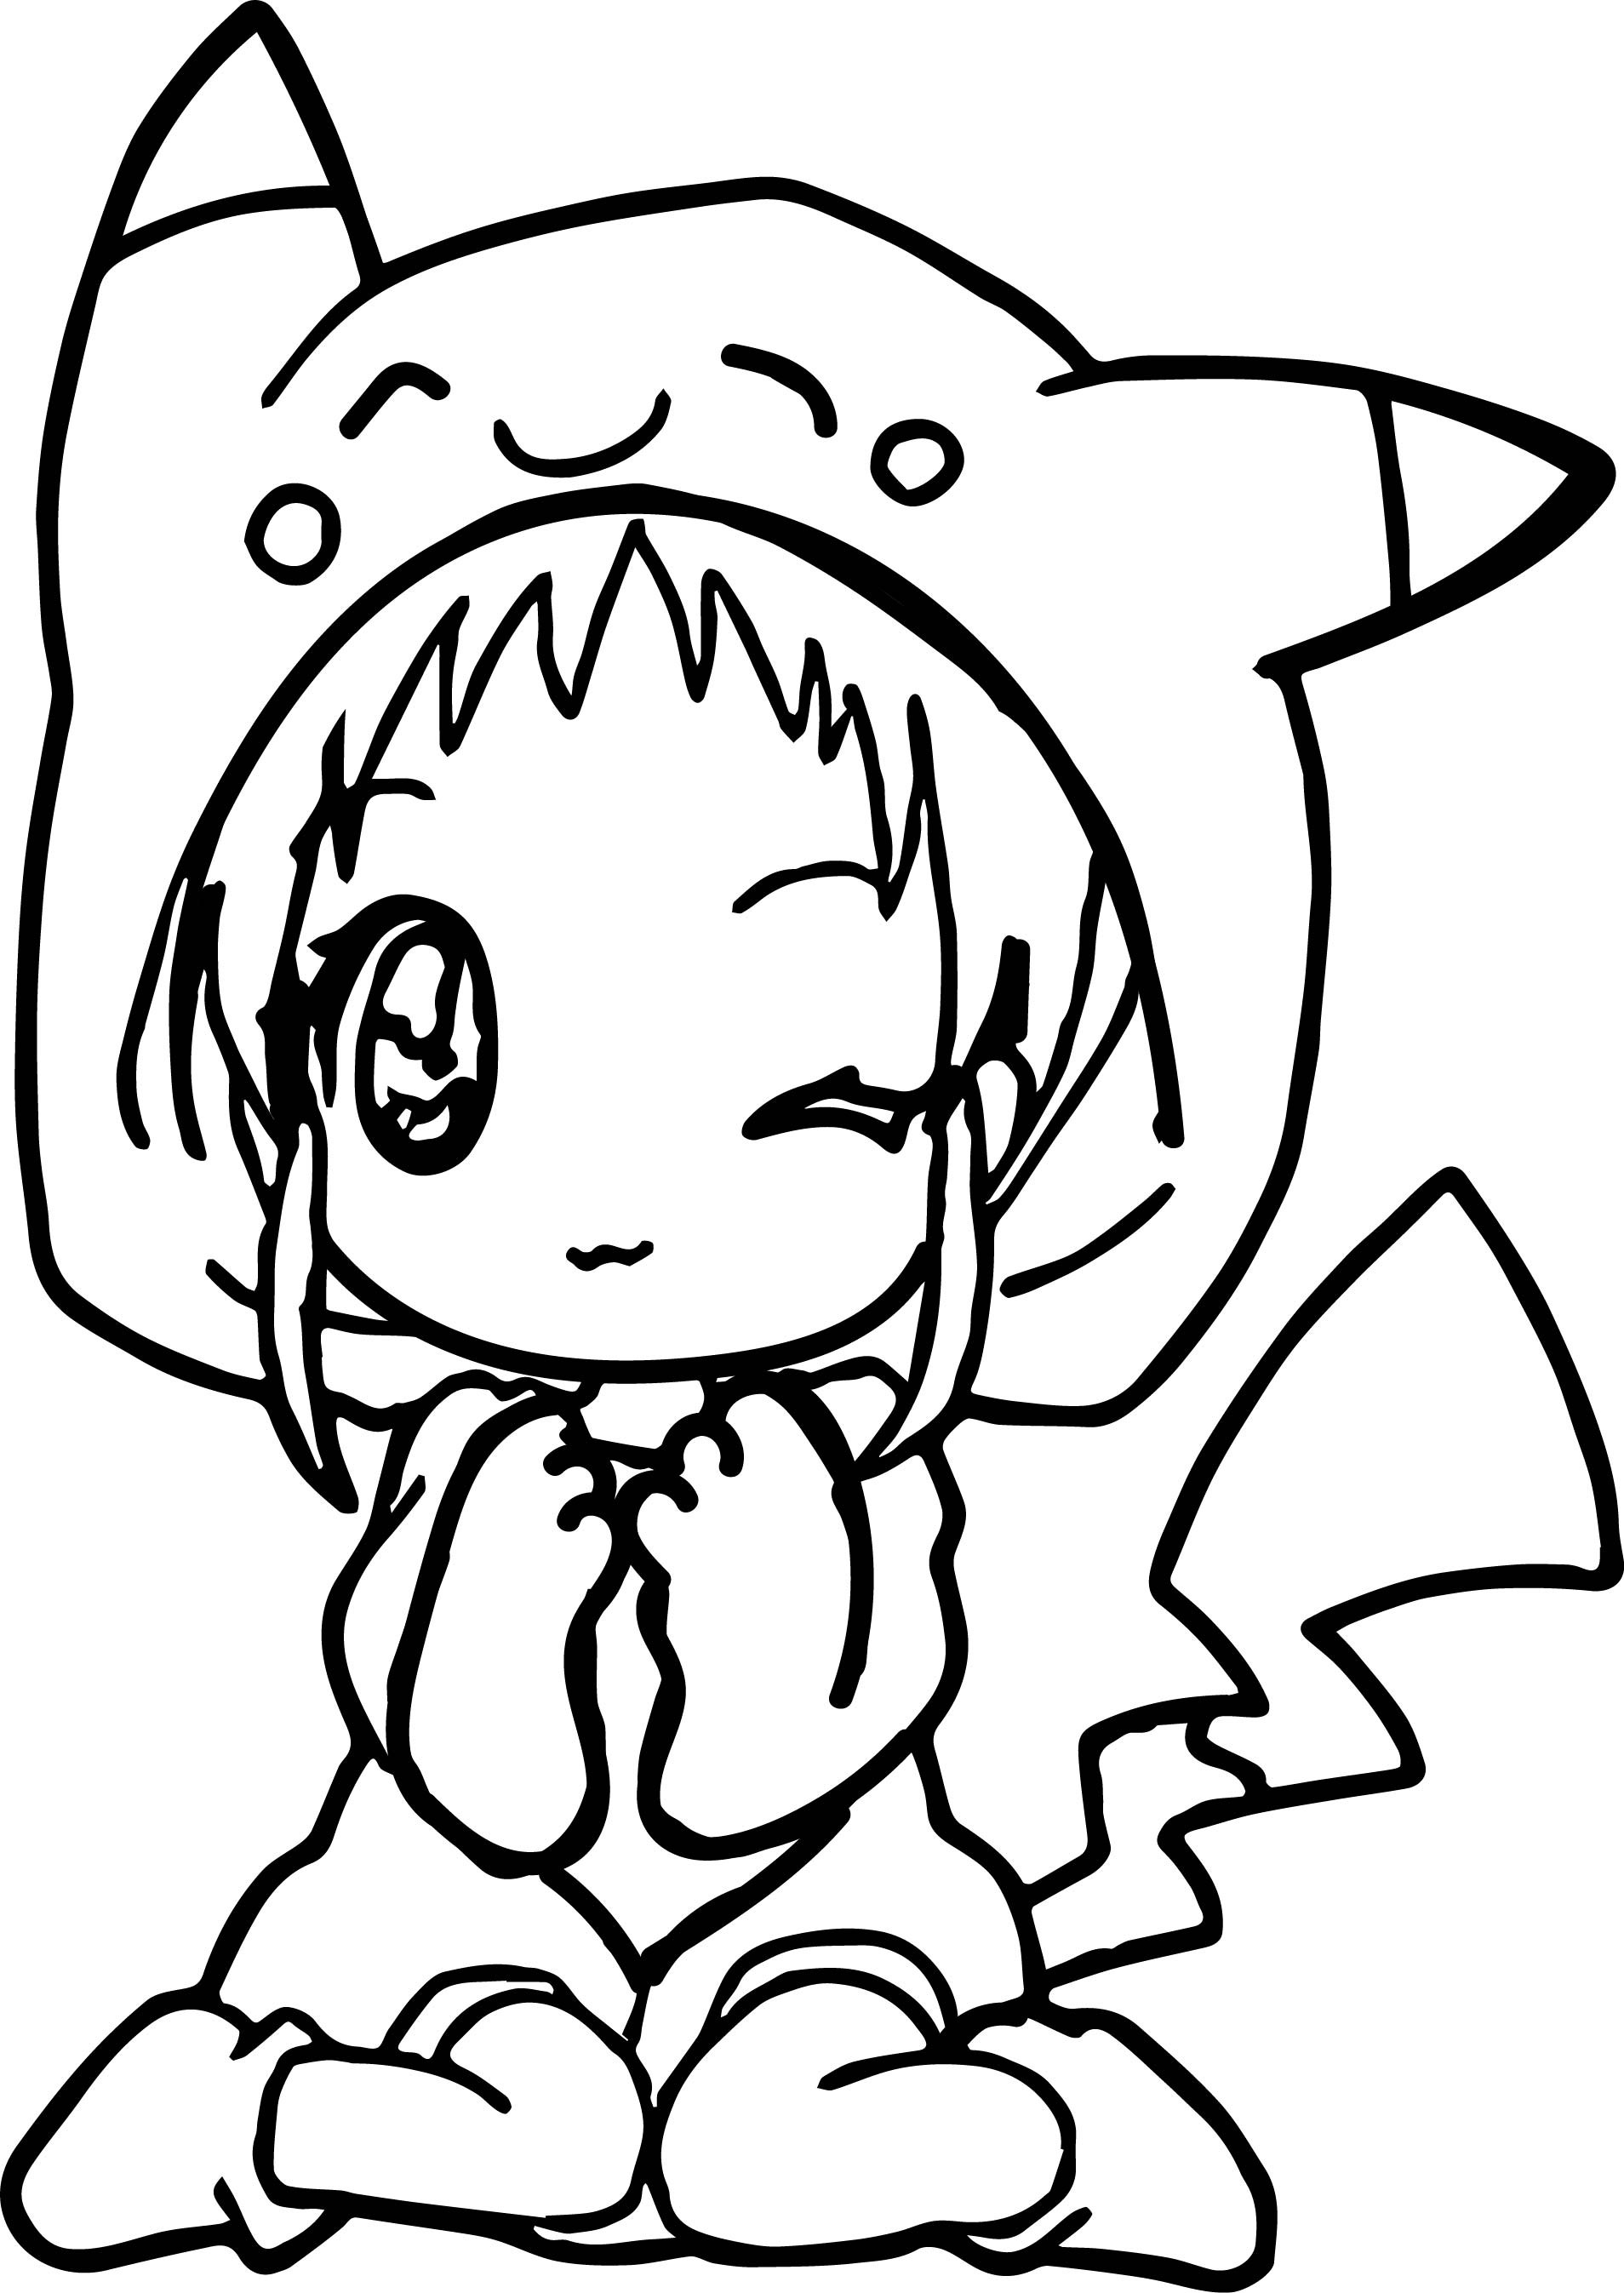 Pokemon Coloring Sheets For Girls  Anime Girl Coloring Pages coloringsuite